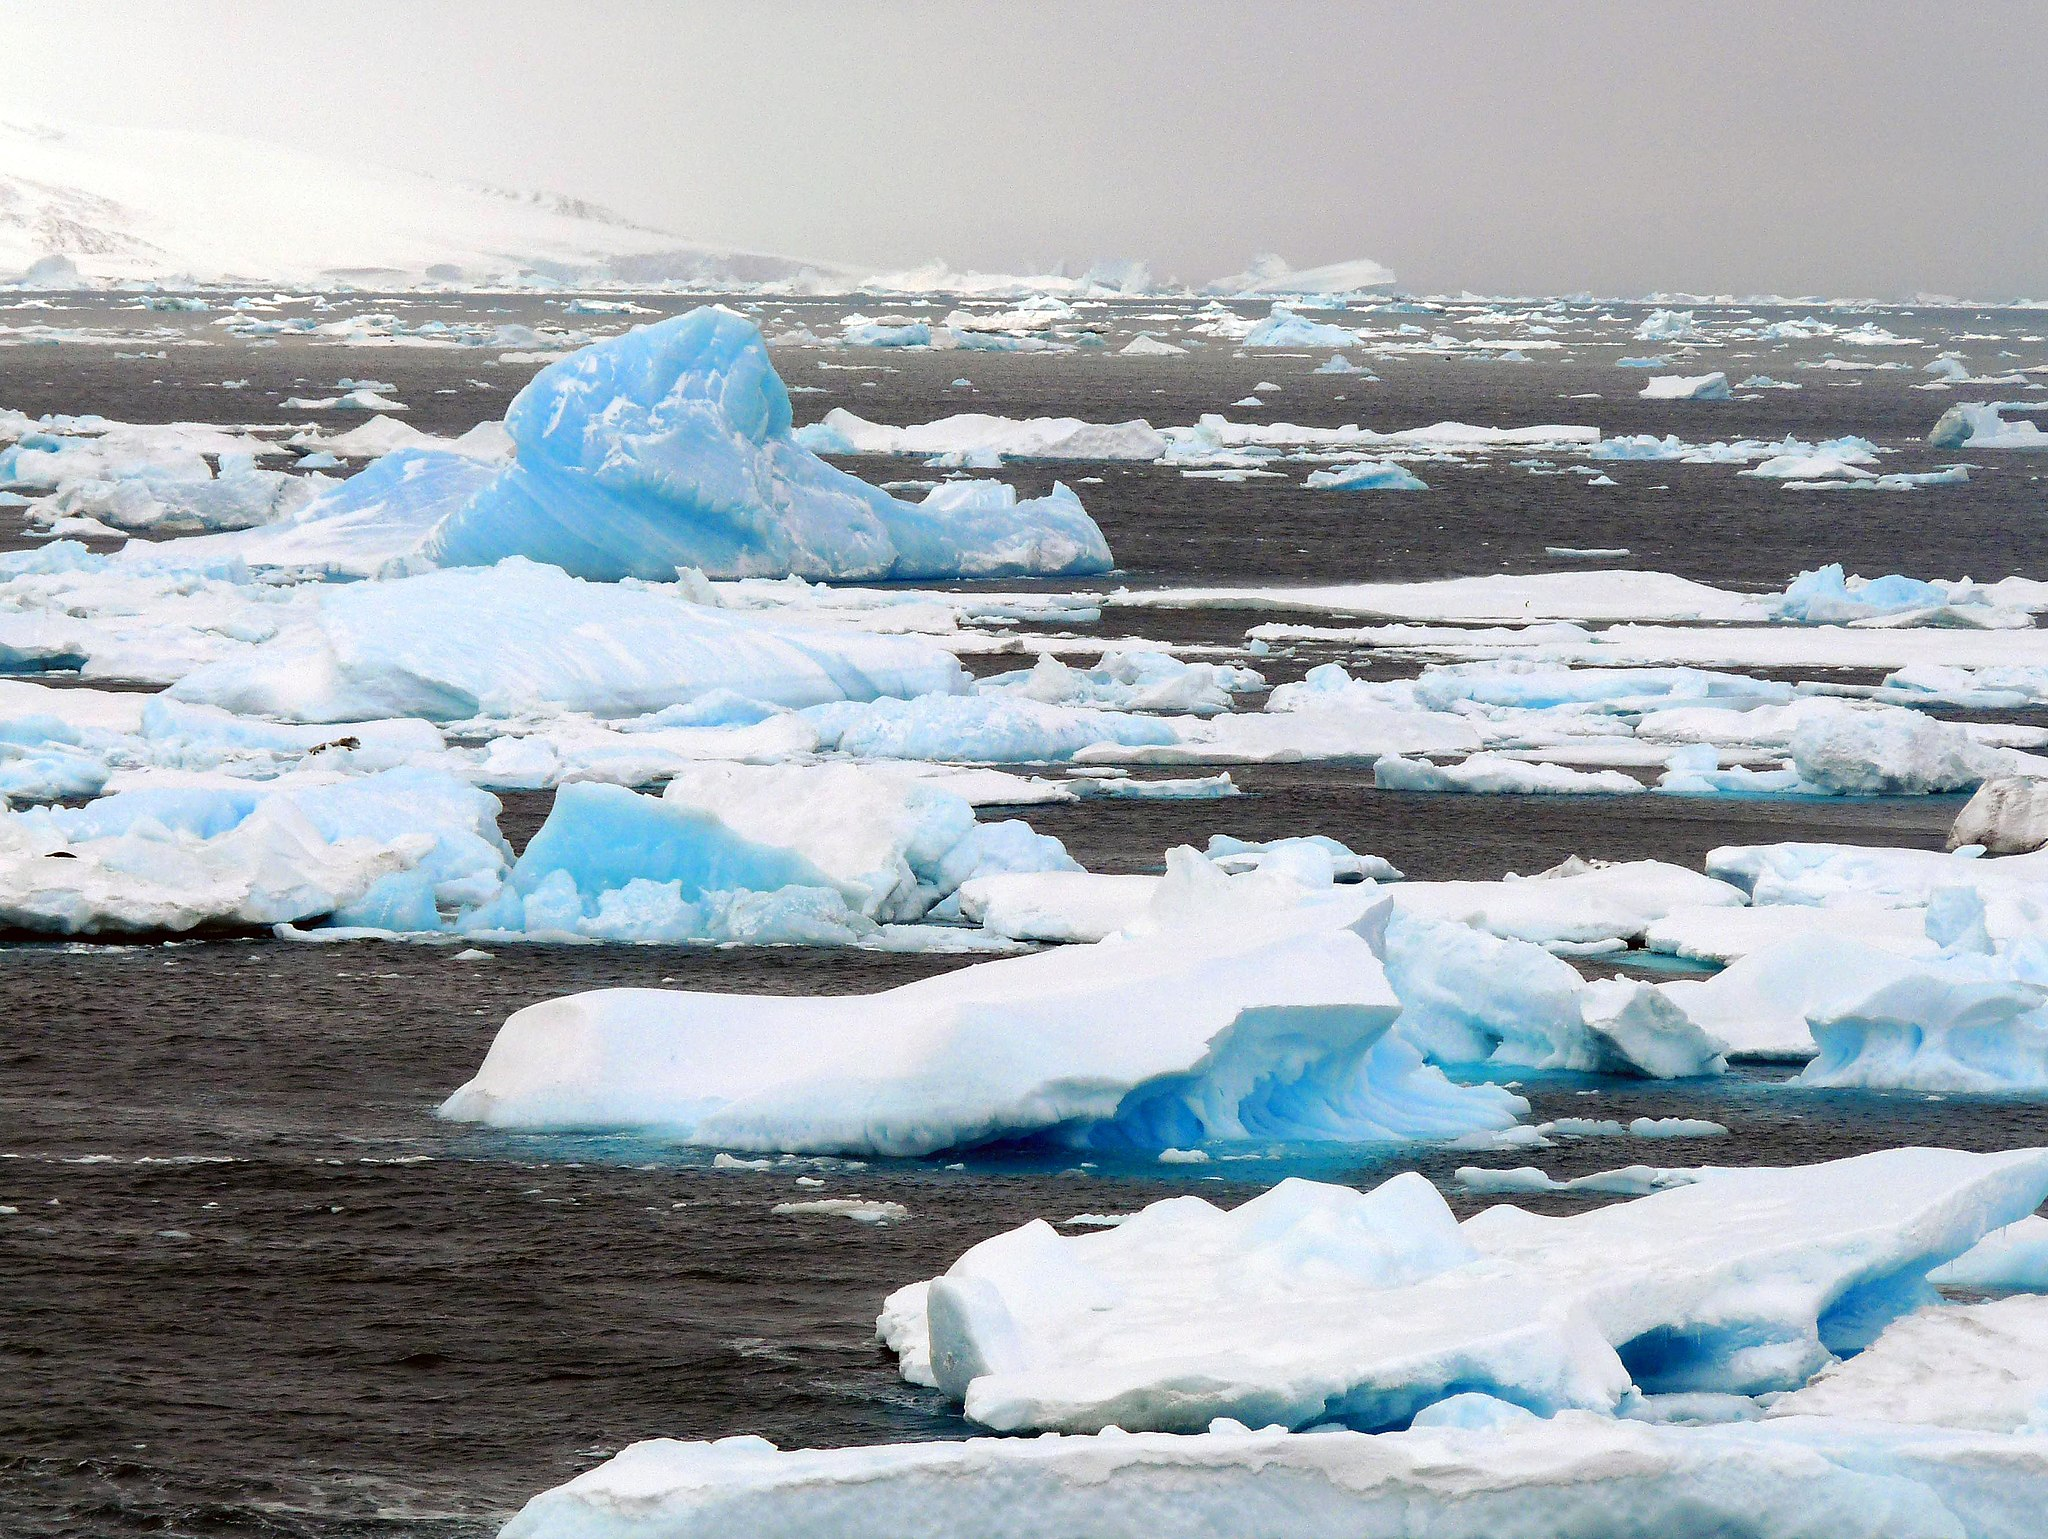 By michael clarke stuff (AP97 ice floes) [CC BY-SA 2.0 (https://creativecommons.org/licenses/by-sa/2.0)], via Wikimedia Commons